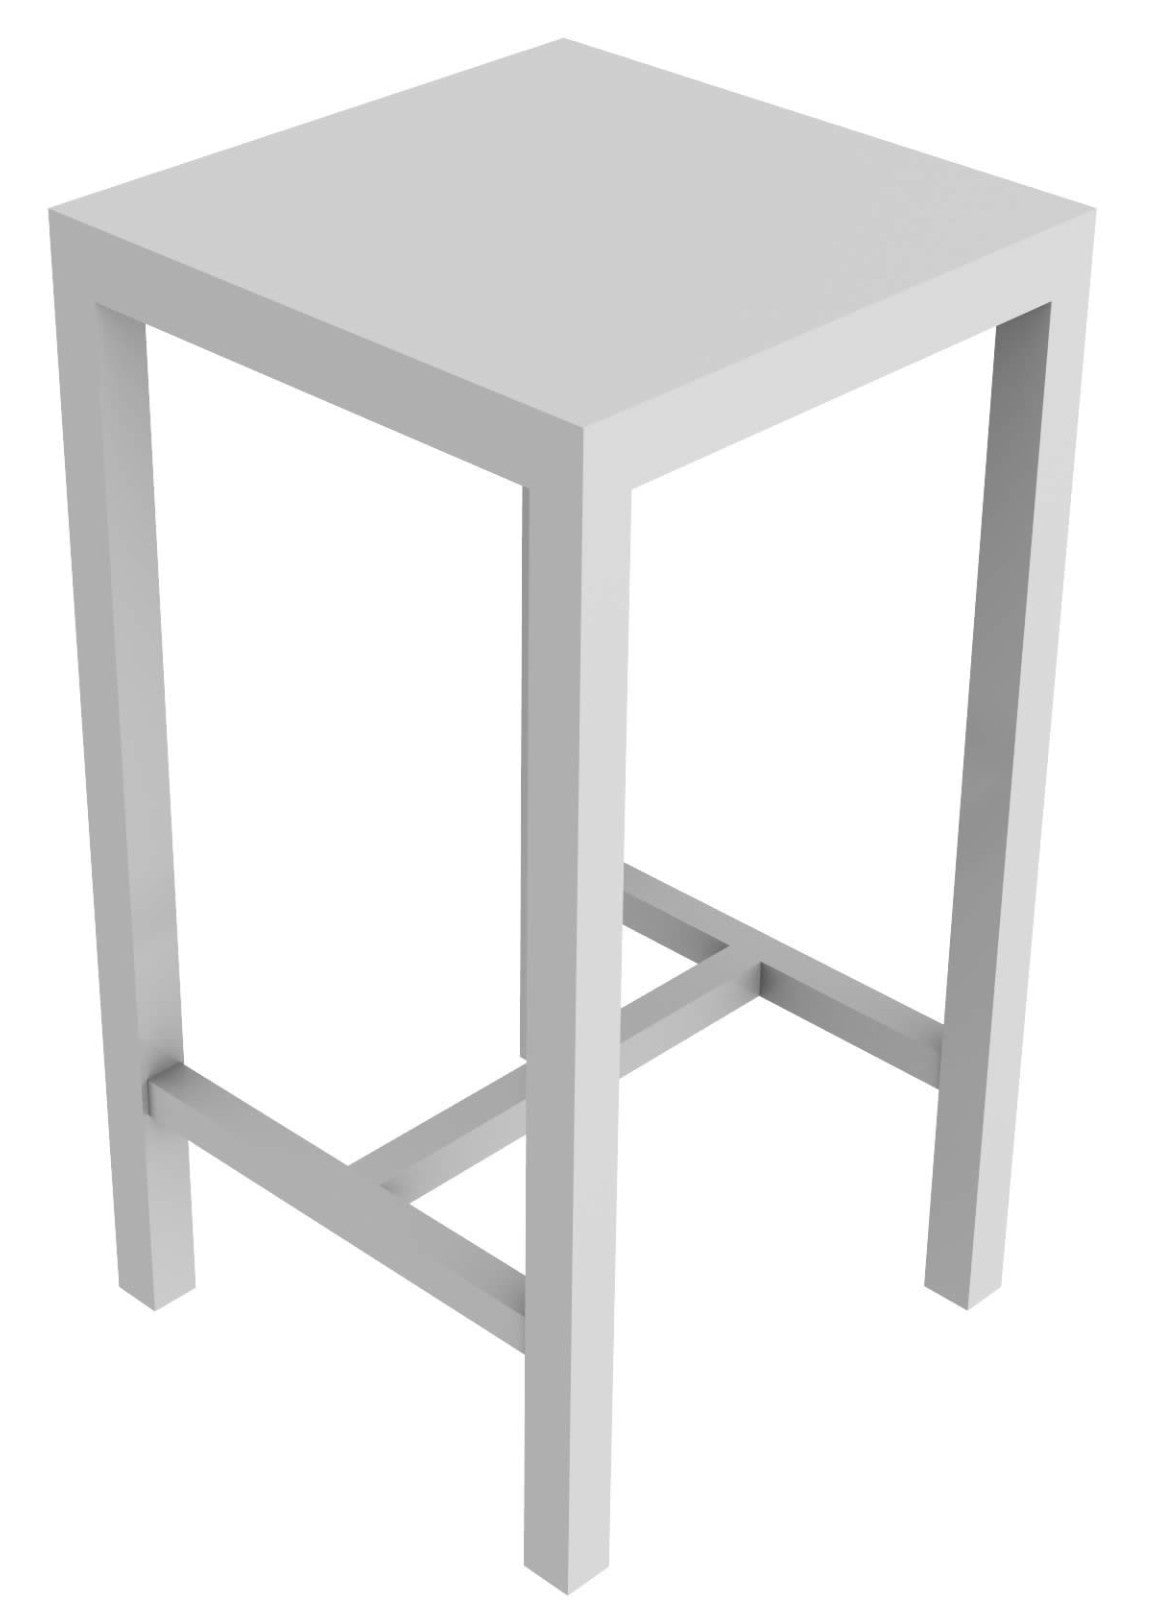 Conrad square high table 60 x 60 cm